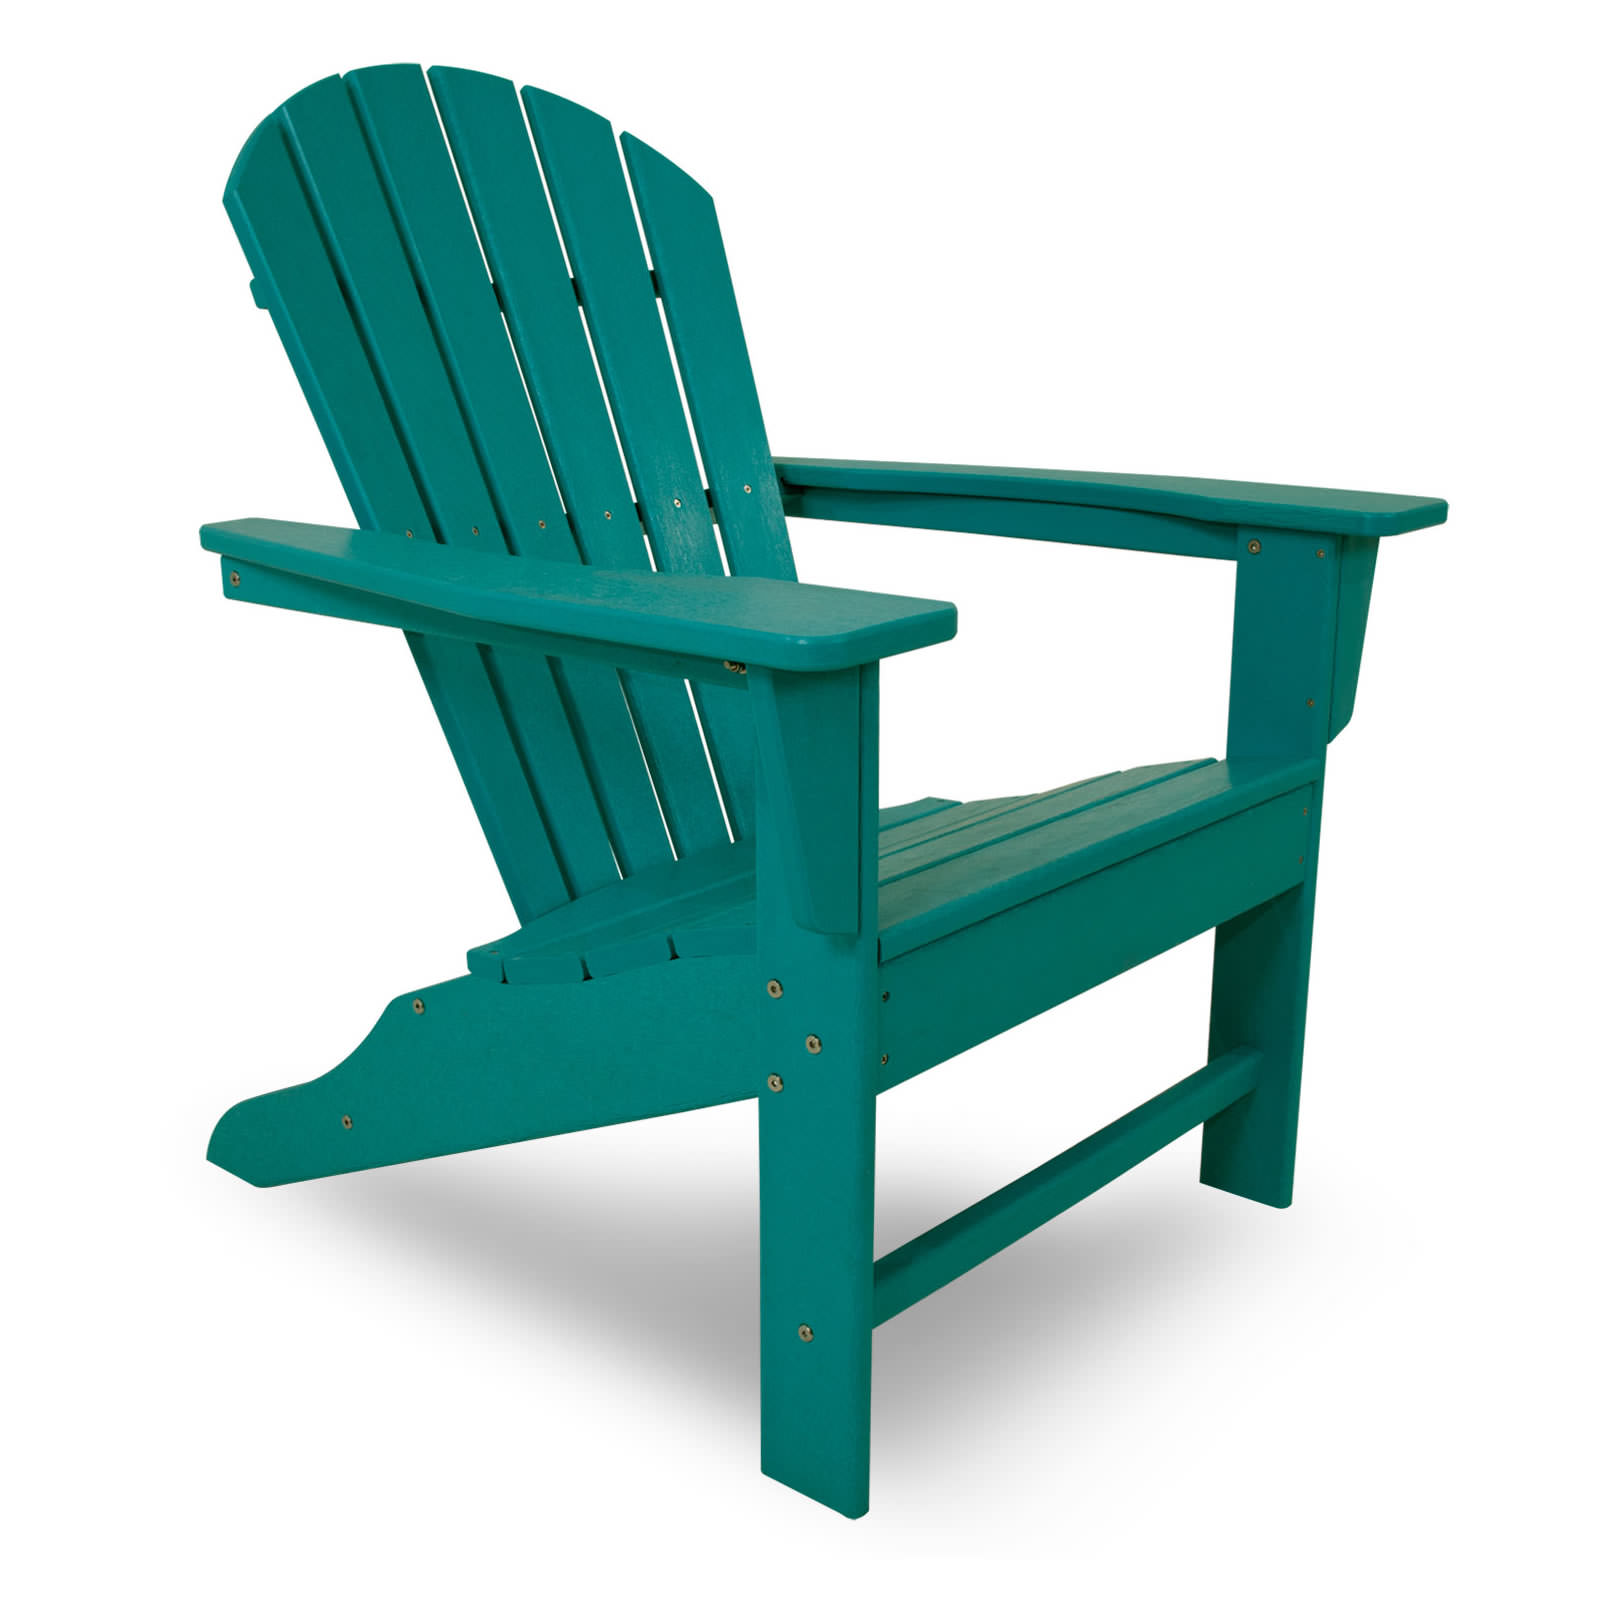 POLYWOOD South Beach Adirondack Chair Poly Adirondack Chairs